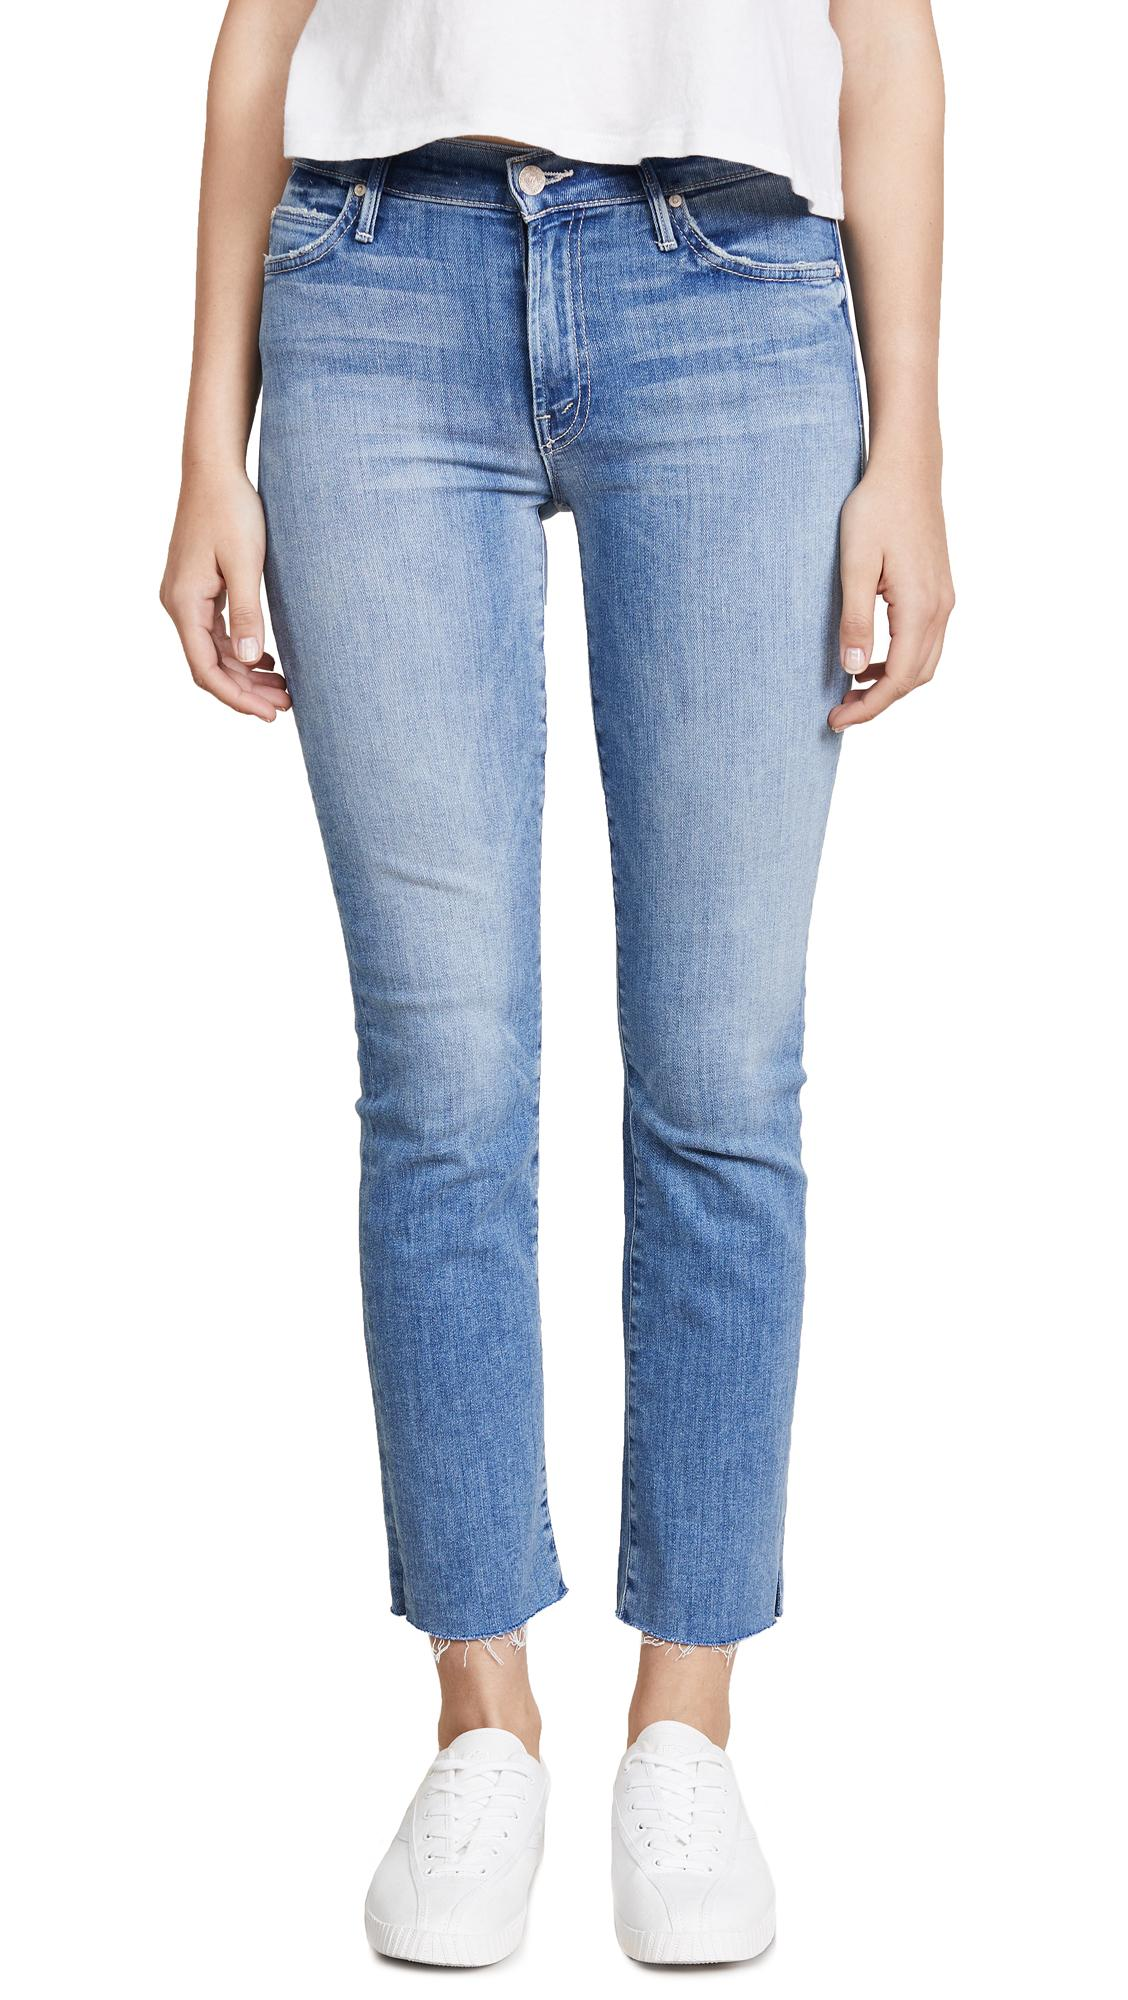 7159cc8804a7d Mother Rascal Ankle Snippet Jeans In Well Played